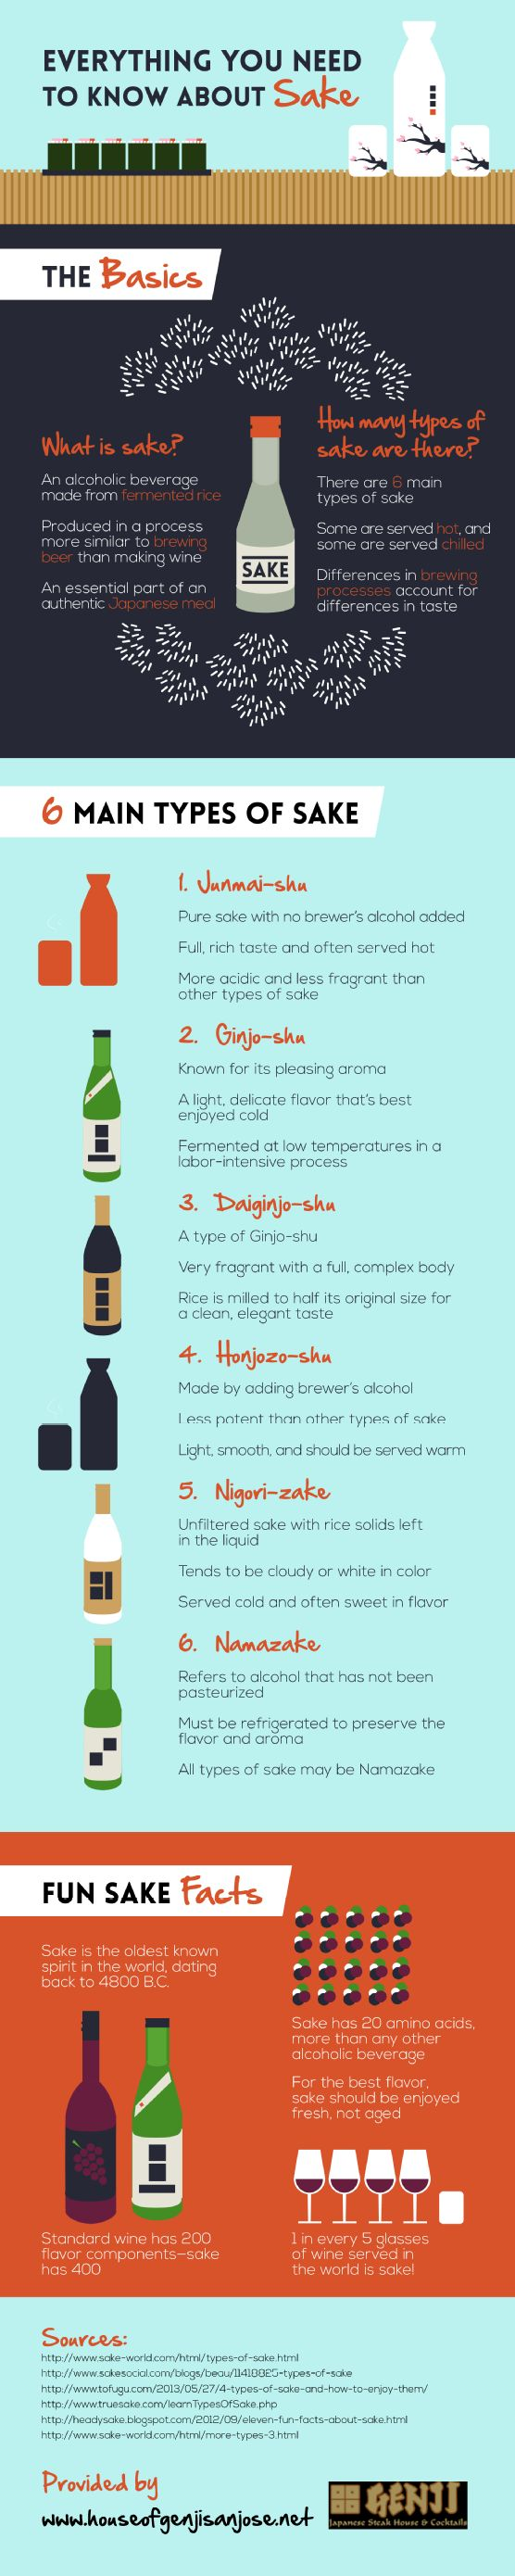 Ginjo-shu is a type of sake that is well-known for its pleasant smell. With its full, rich flavor, it is most often enjoyed hot. This infographic from a Japanese steakhouse in San Jose has more information about sake.